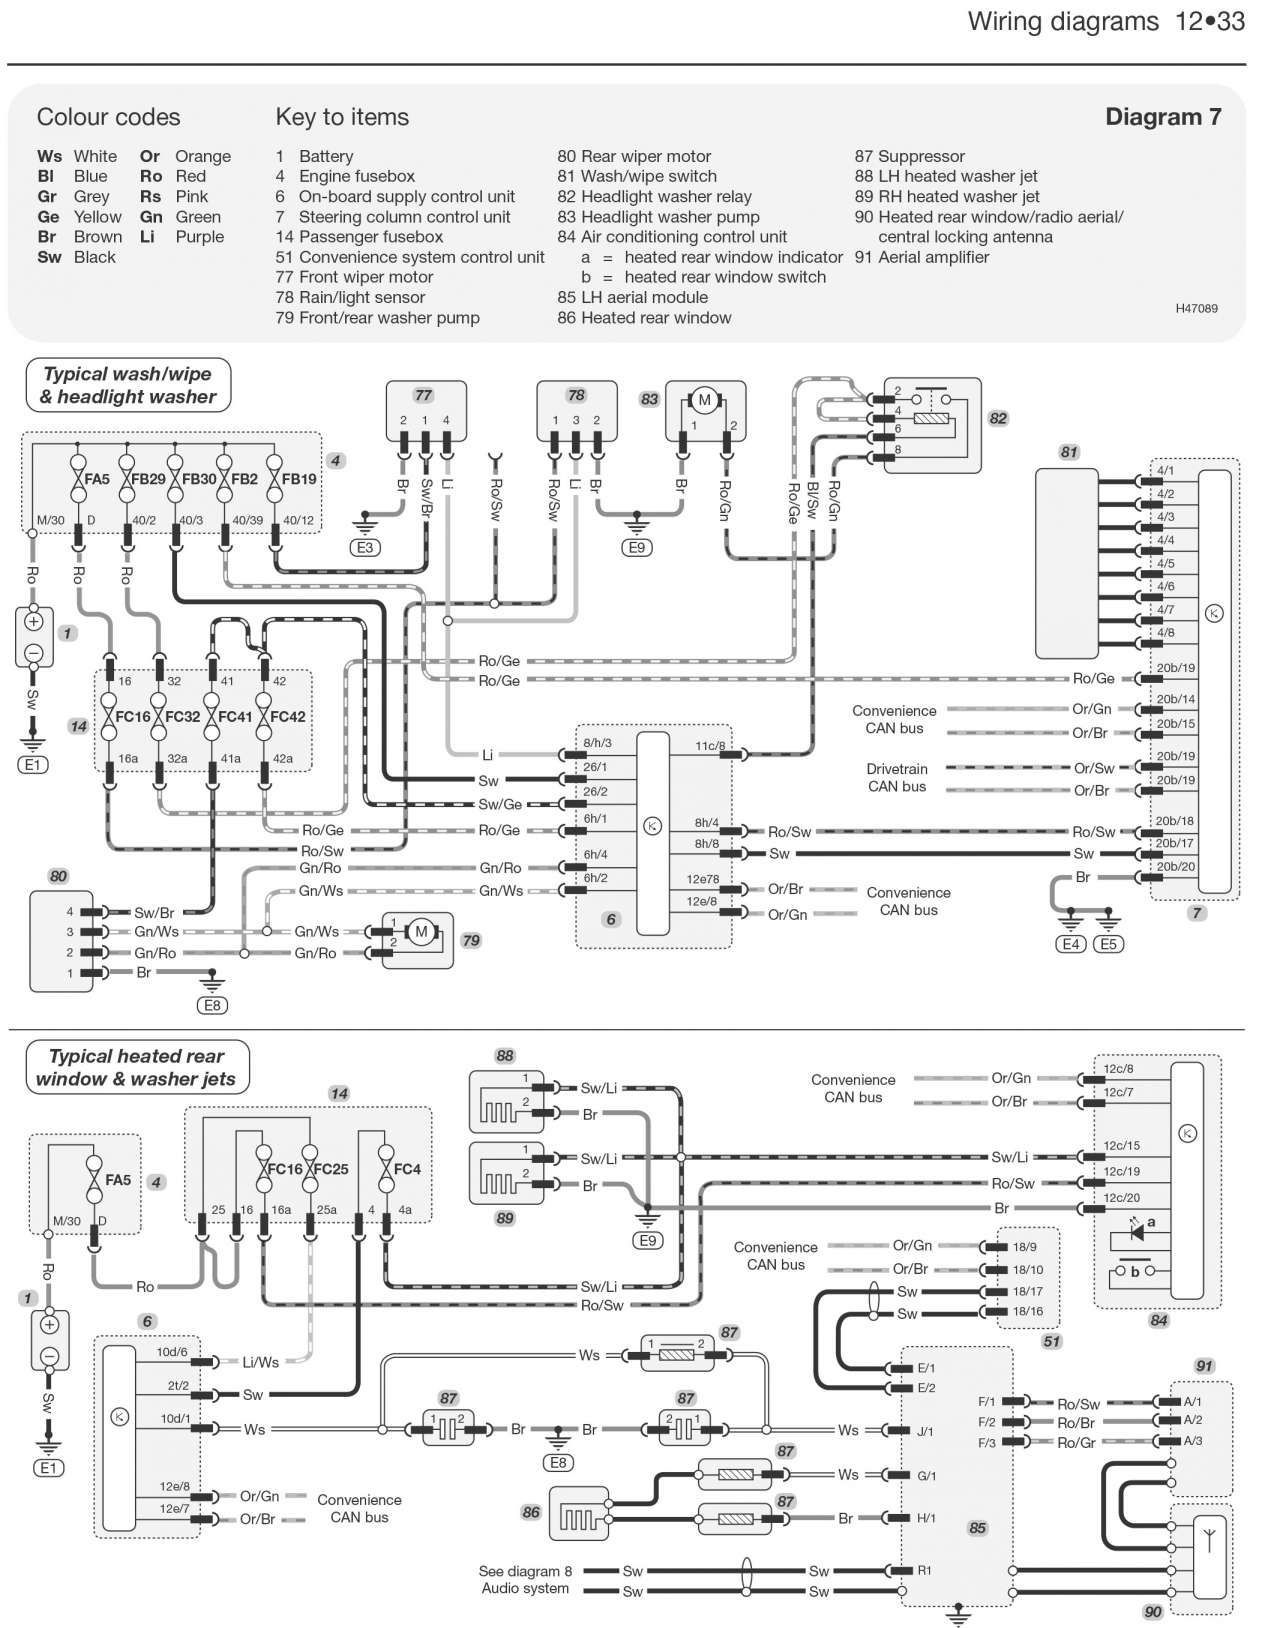 12+ Audi A3 Engine Wiring Diagram - Engine Diagram - Wiringg.net in 2020 | Audi  a3, Audi, EngineeringPinterest